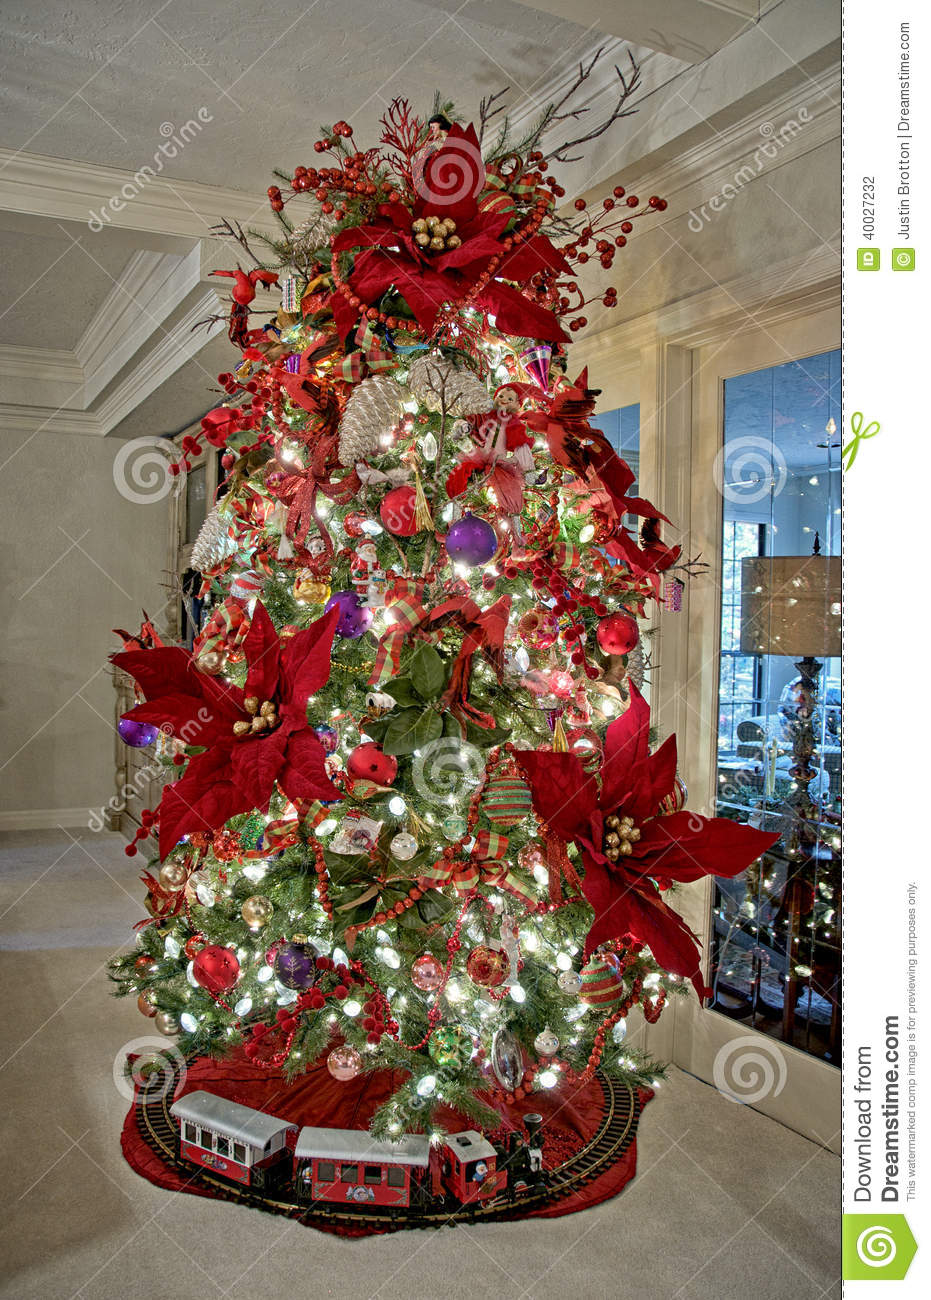 christmas tree ornaments stock photo image 40027232